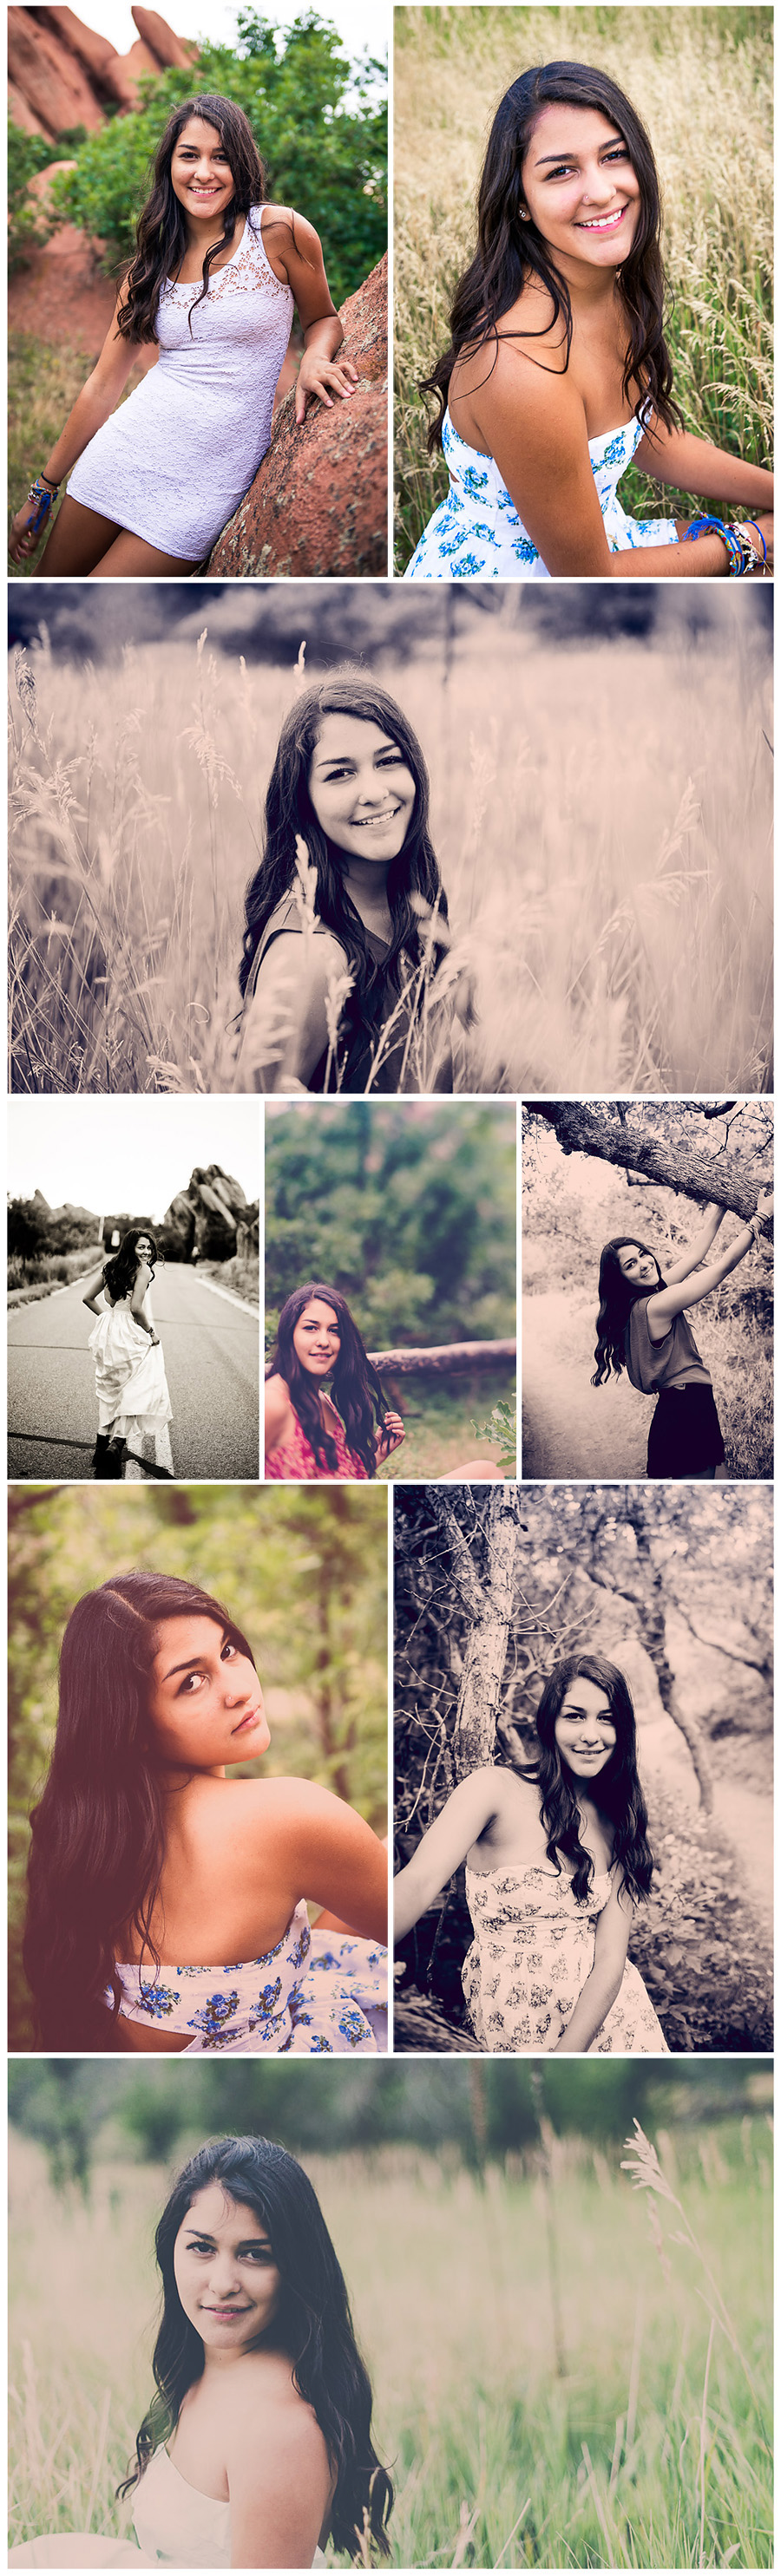 East High School Senior Pictures Jasmine Collage 1